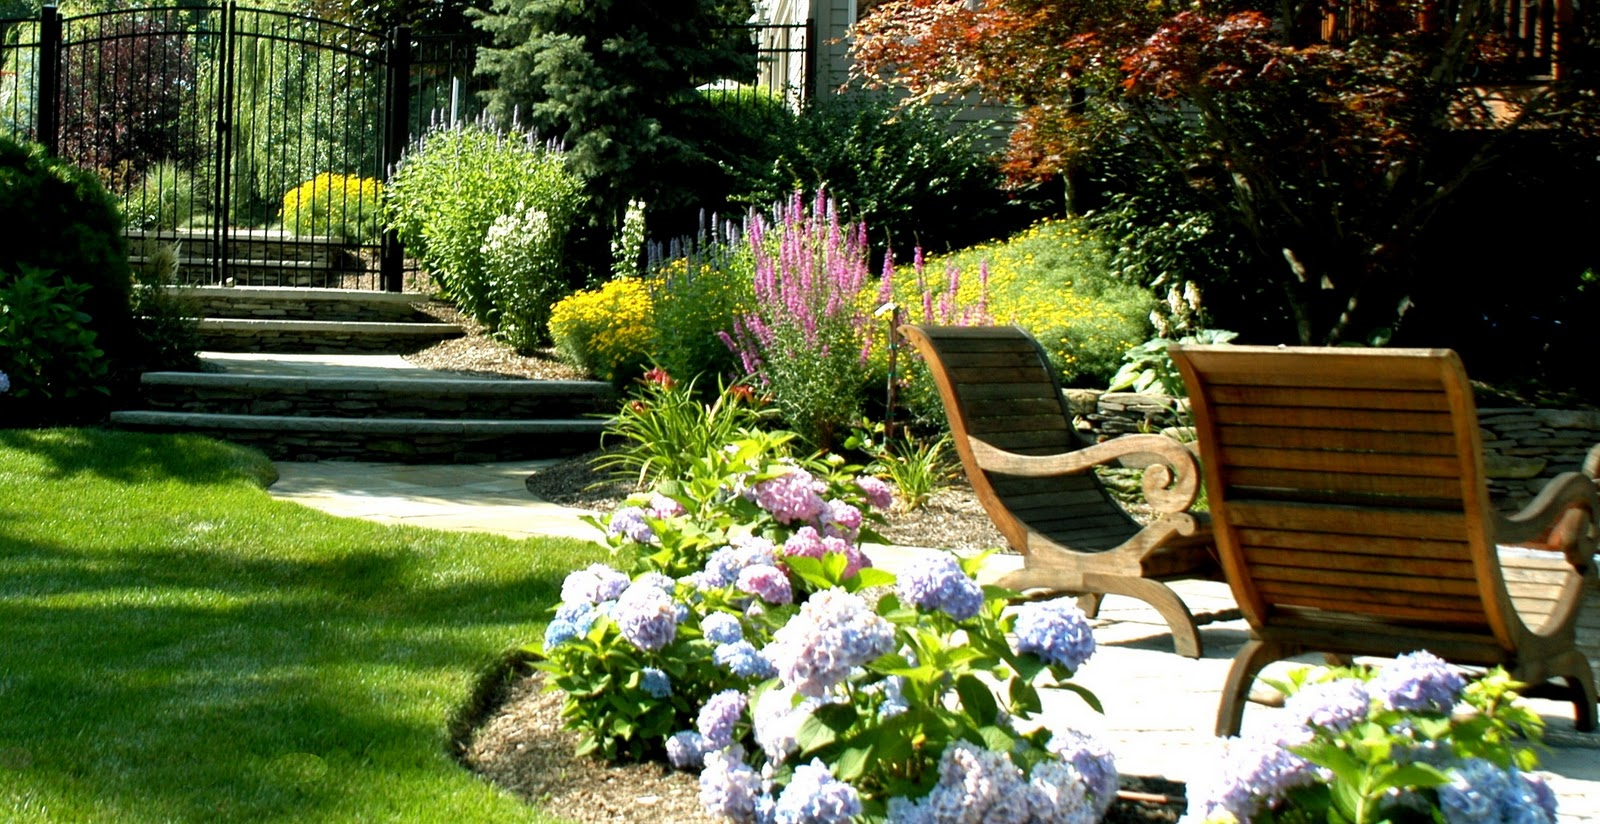 Hightechlandscapes new jersey landscape design for Outdoor garden designs